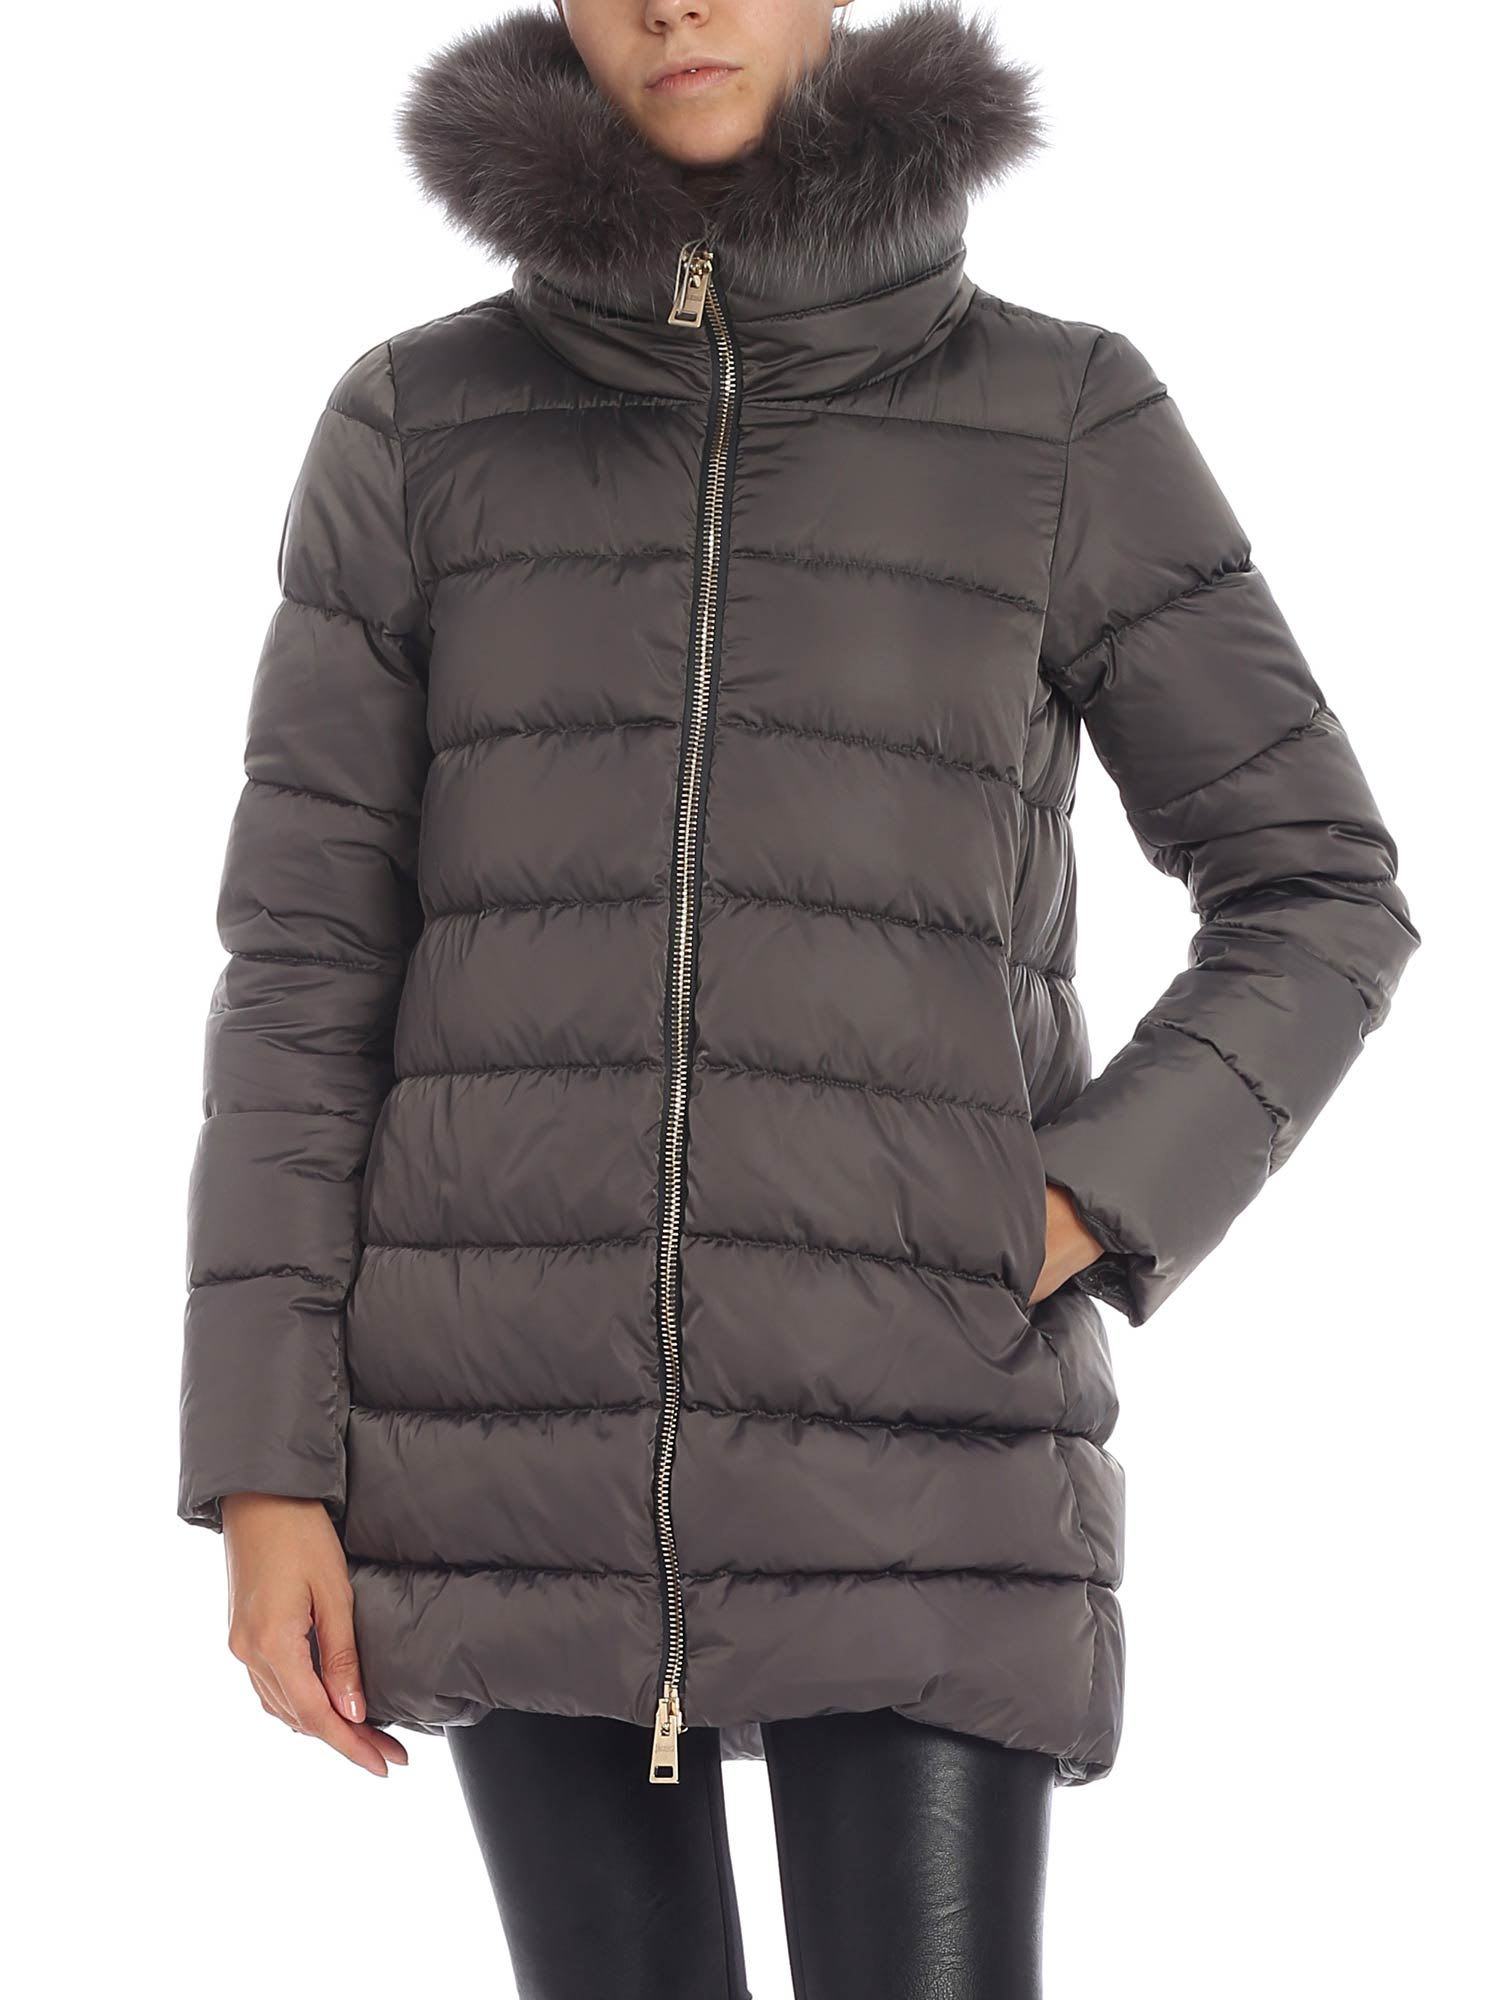 Herno Nylon Down Jacket With Fur Insert